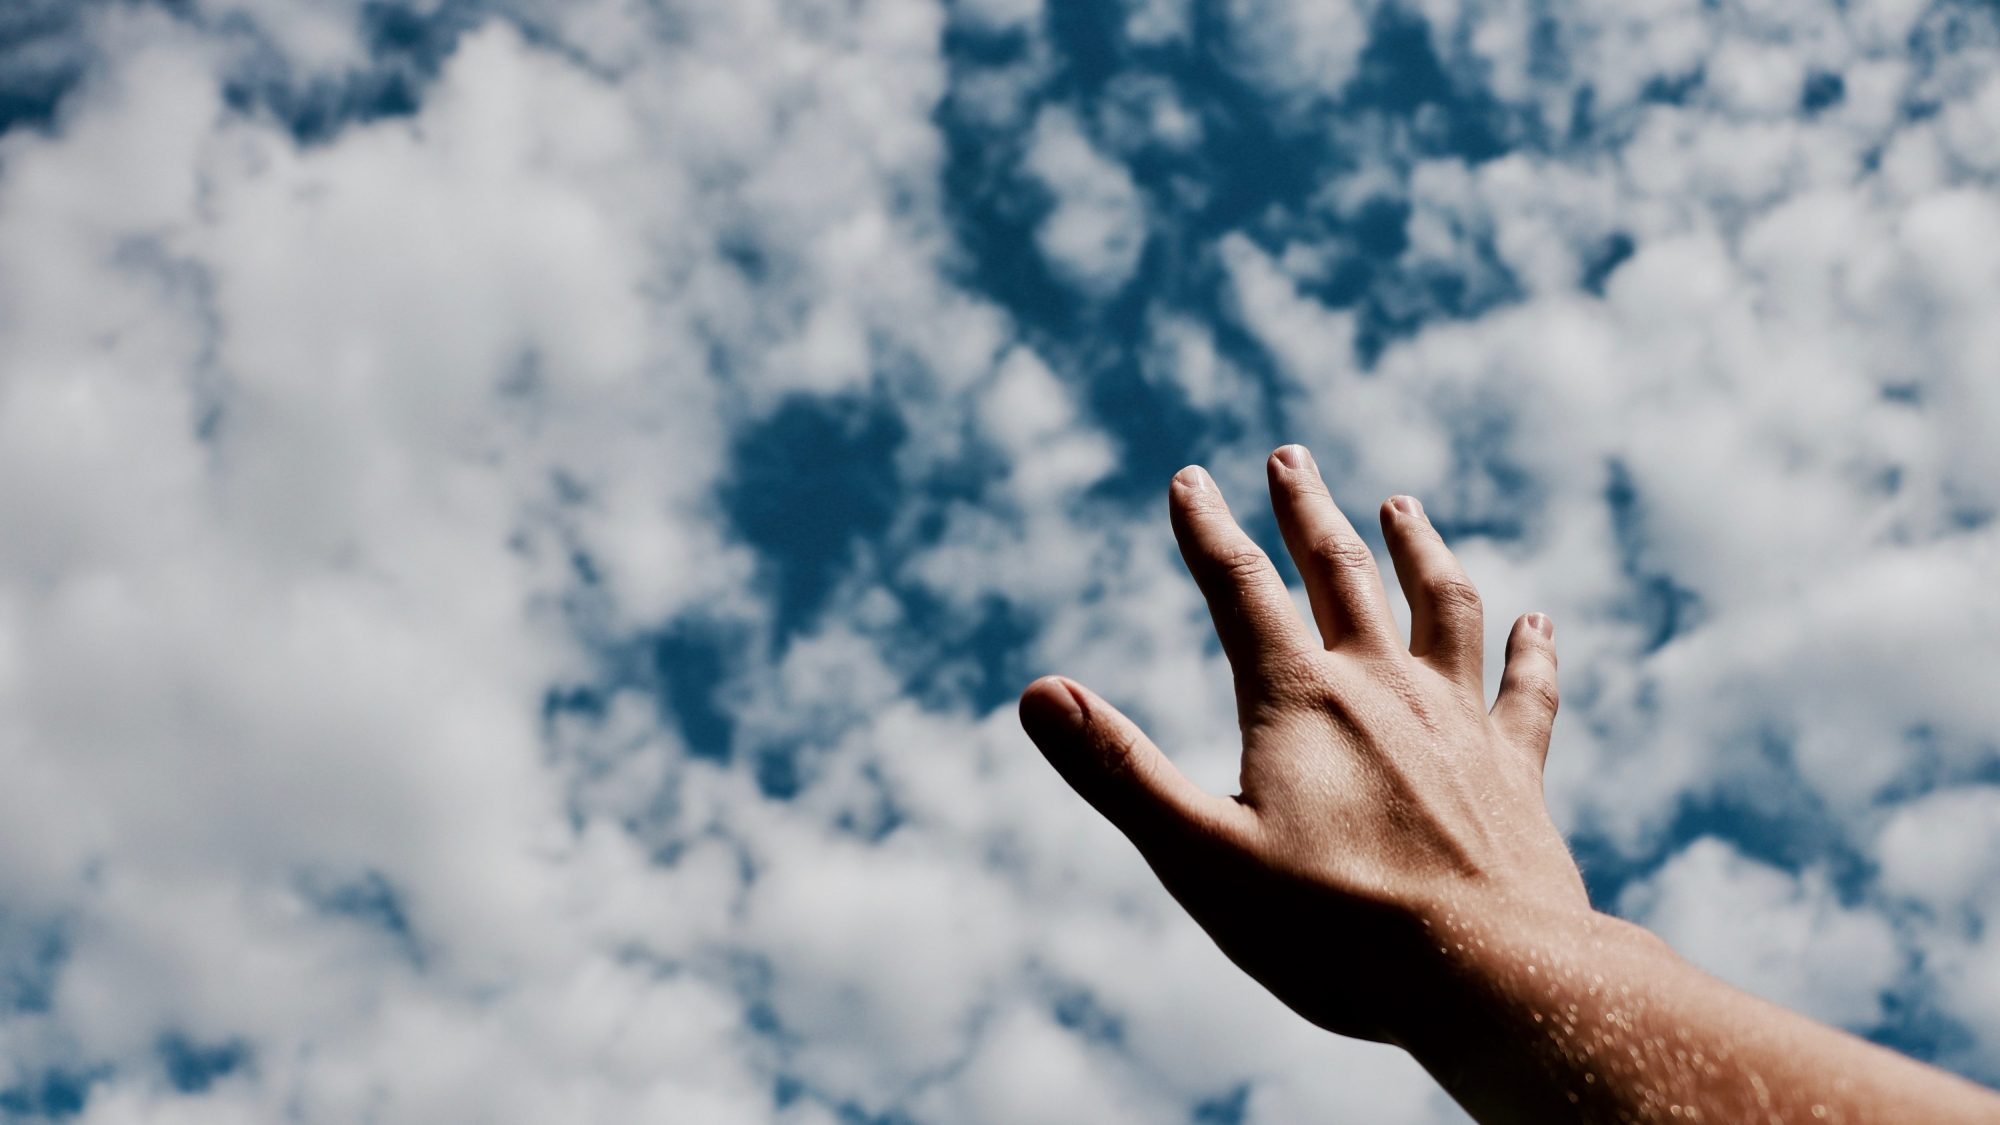 Hand reaching for clouds